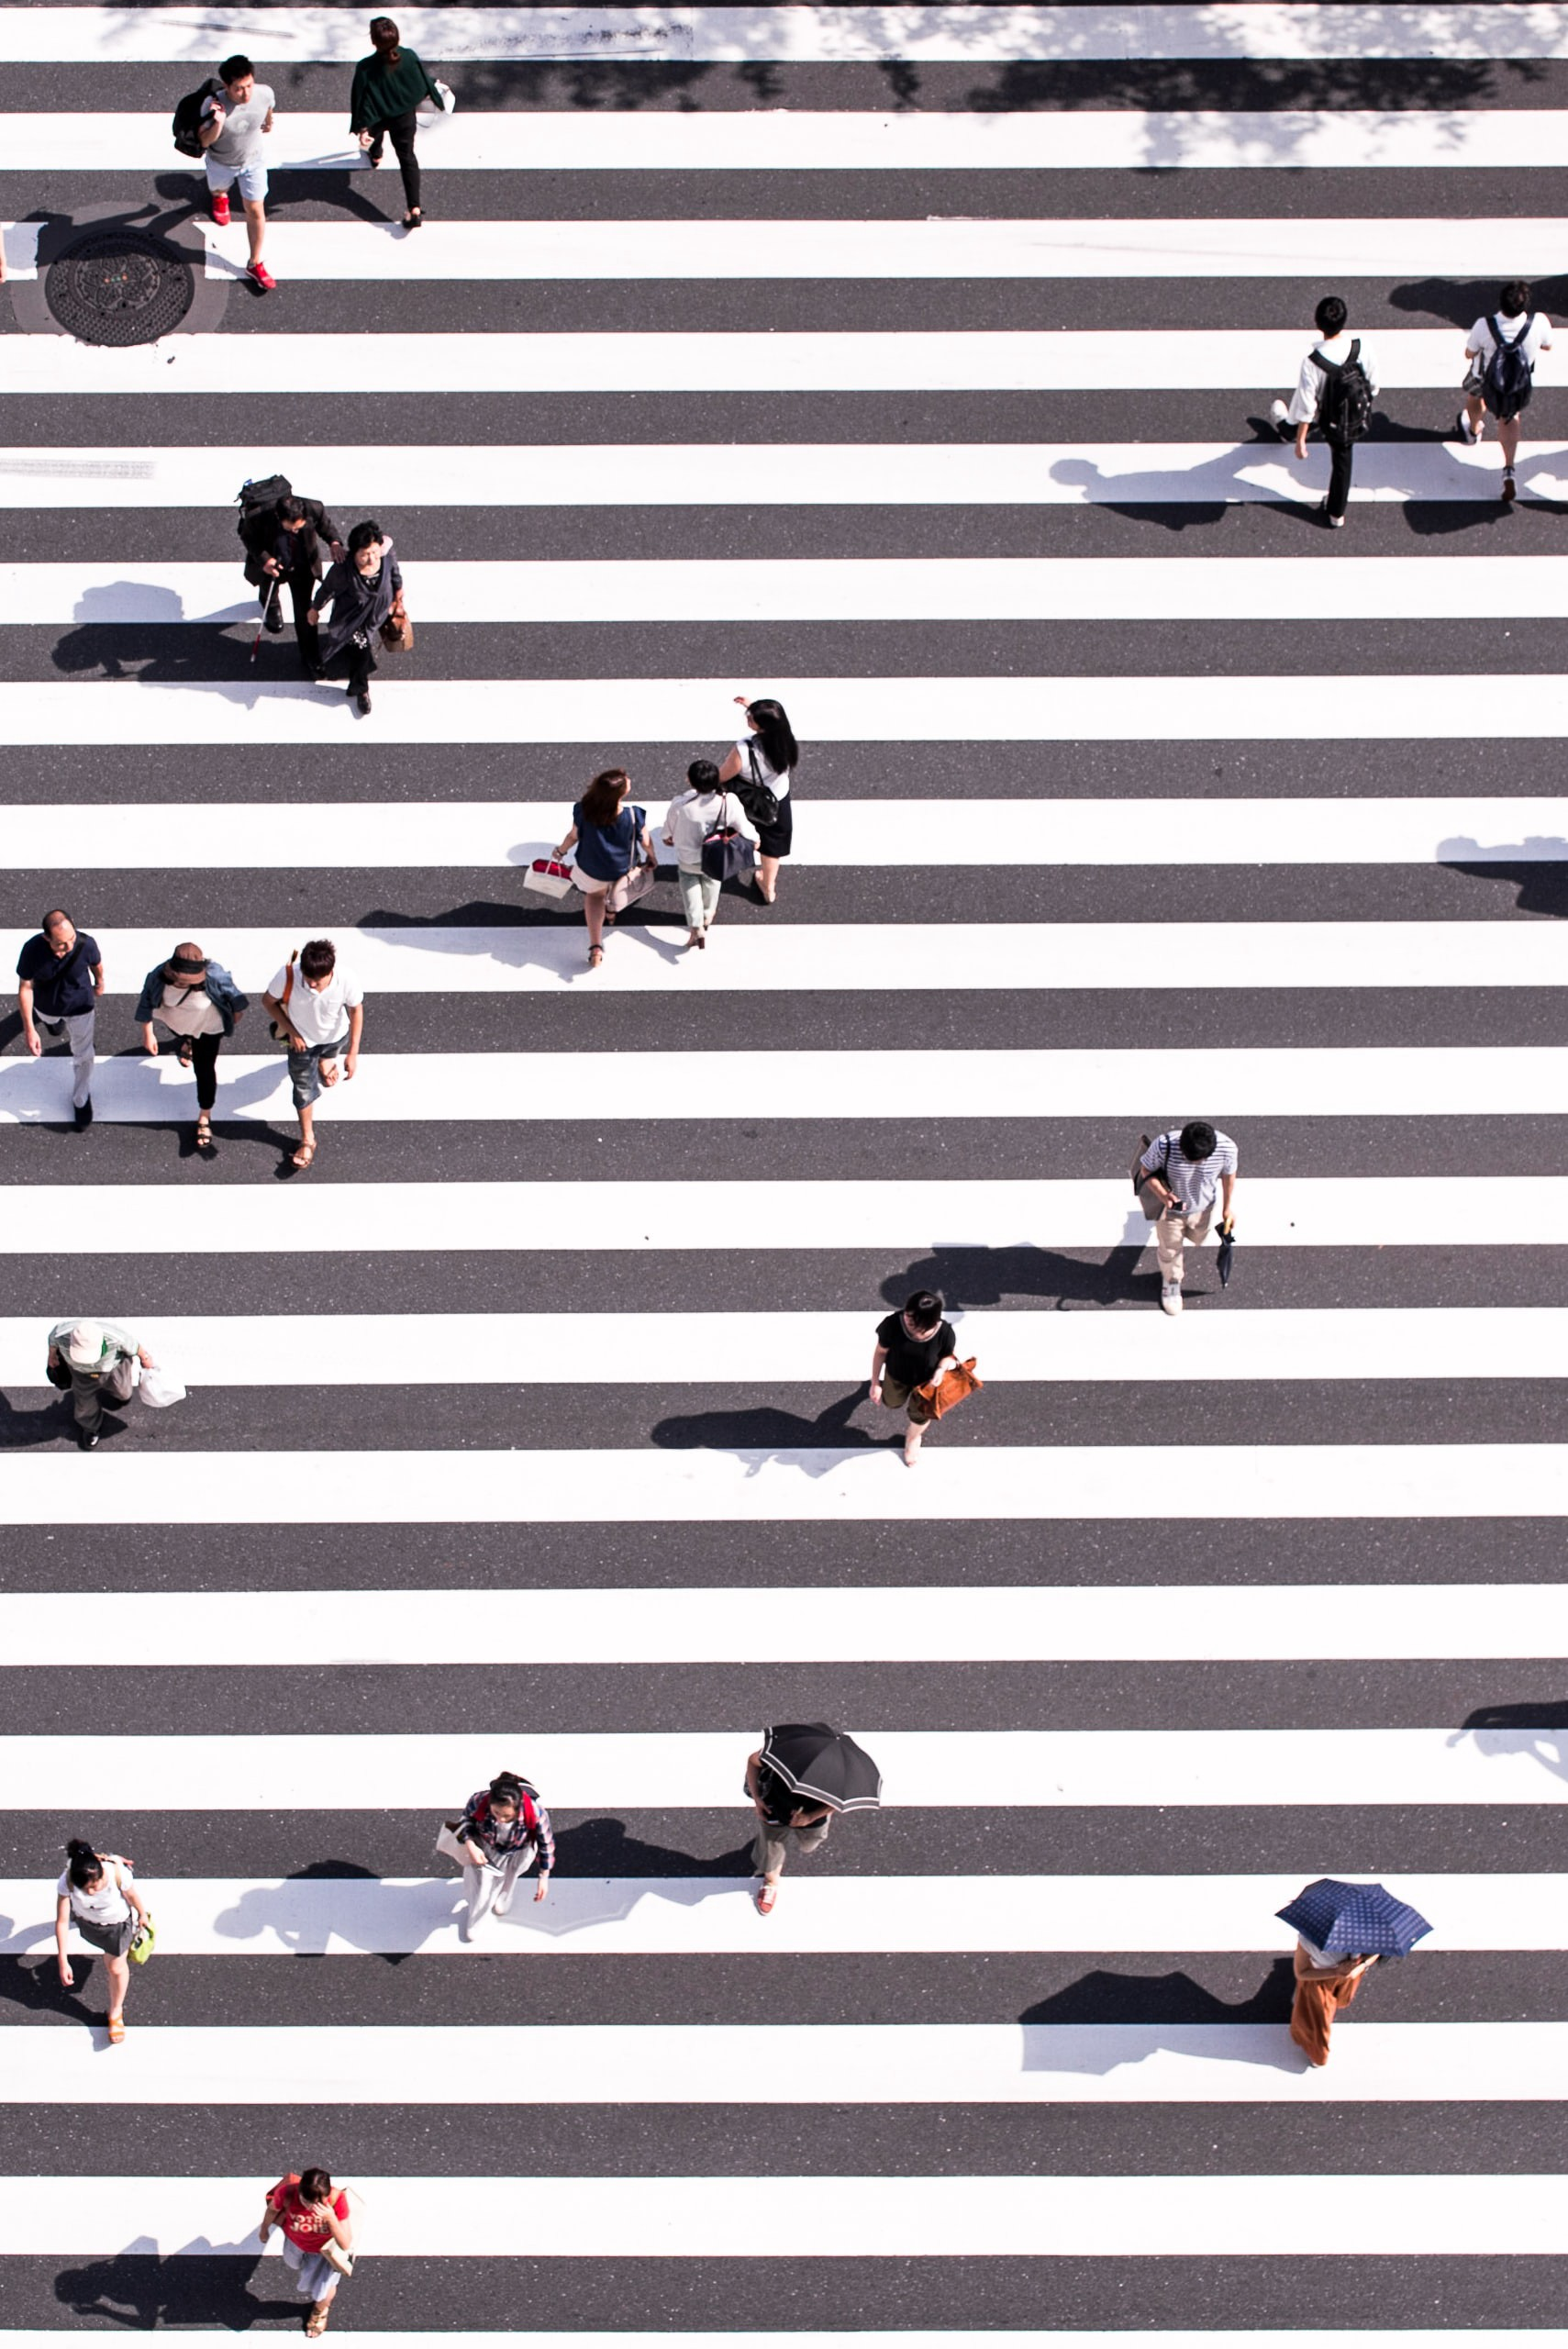 Aerial view of people crossing a black-and-white crosswalk.